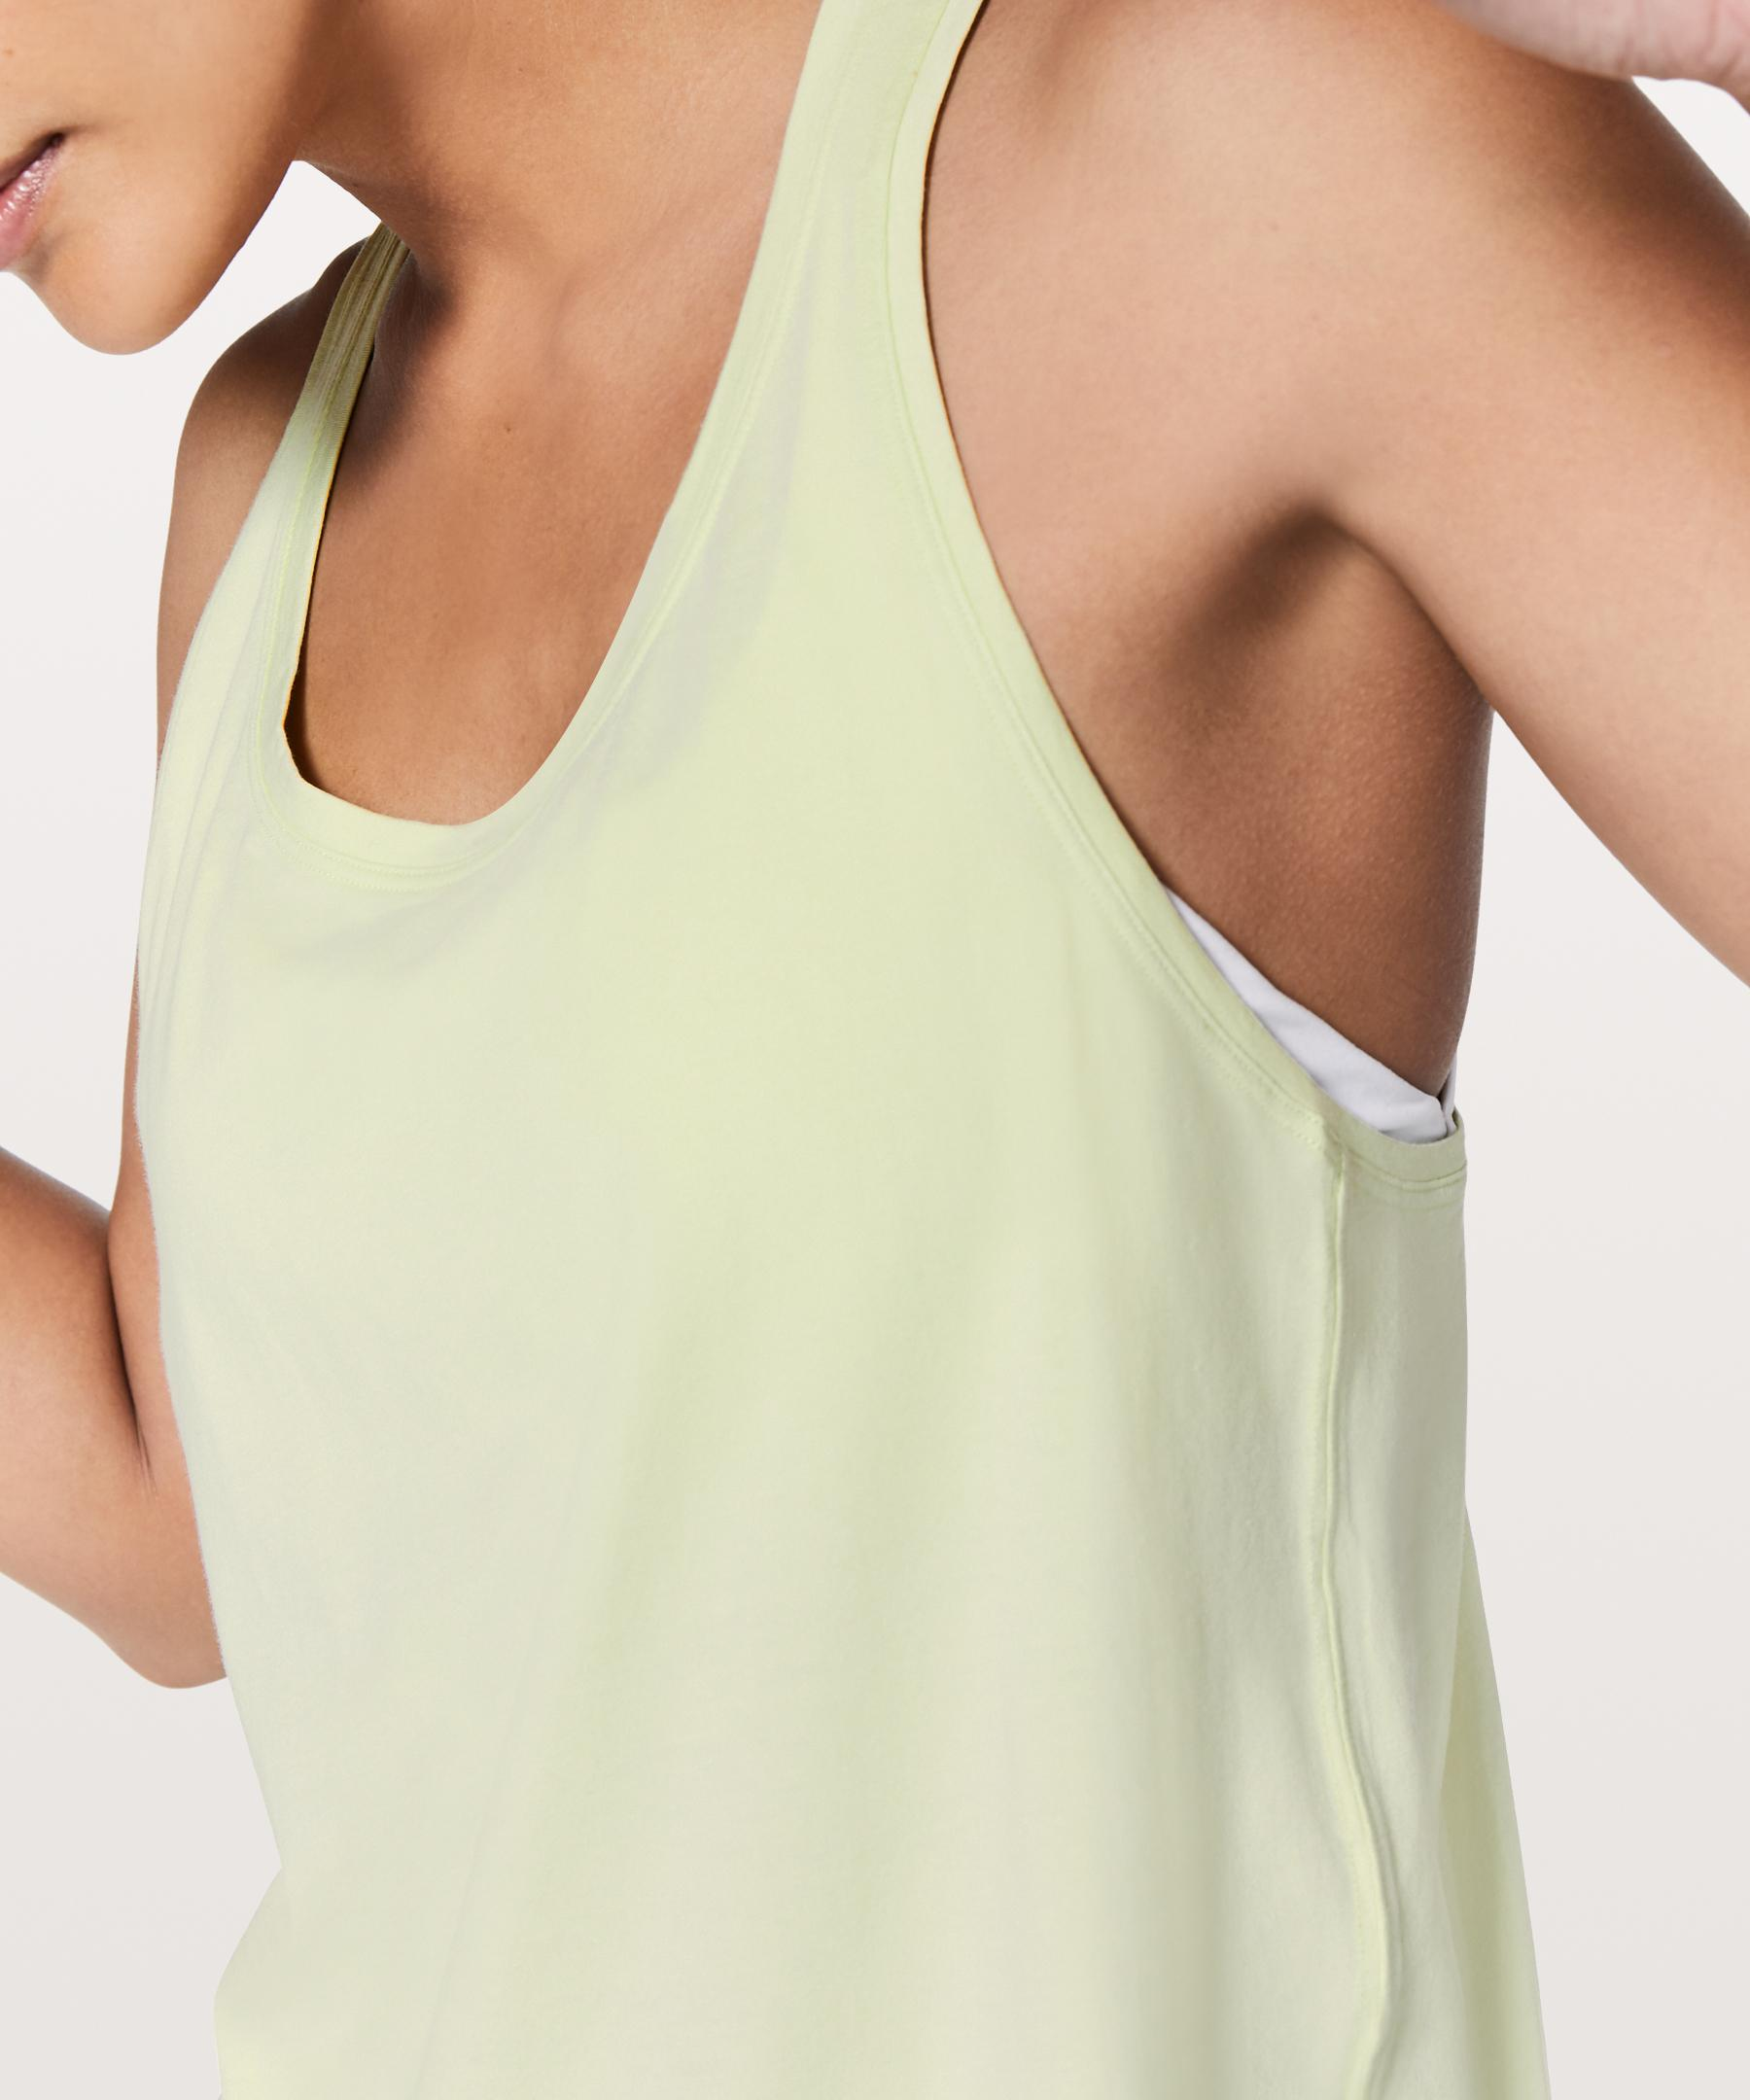 09d7ee9ab23e8 Lyst - Lululemon Athletica Love Tank  pleated in Green